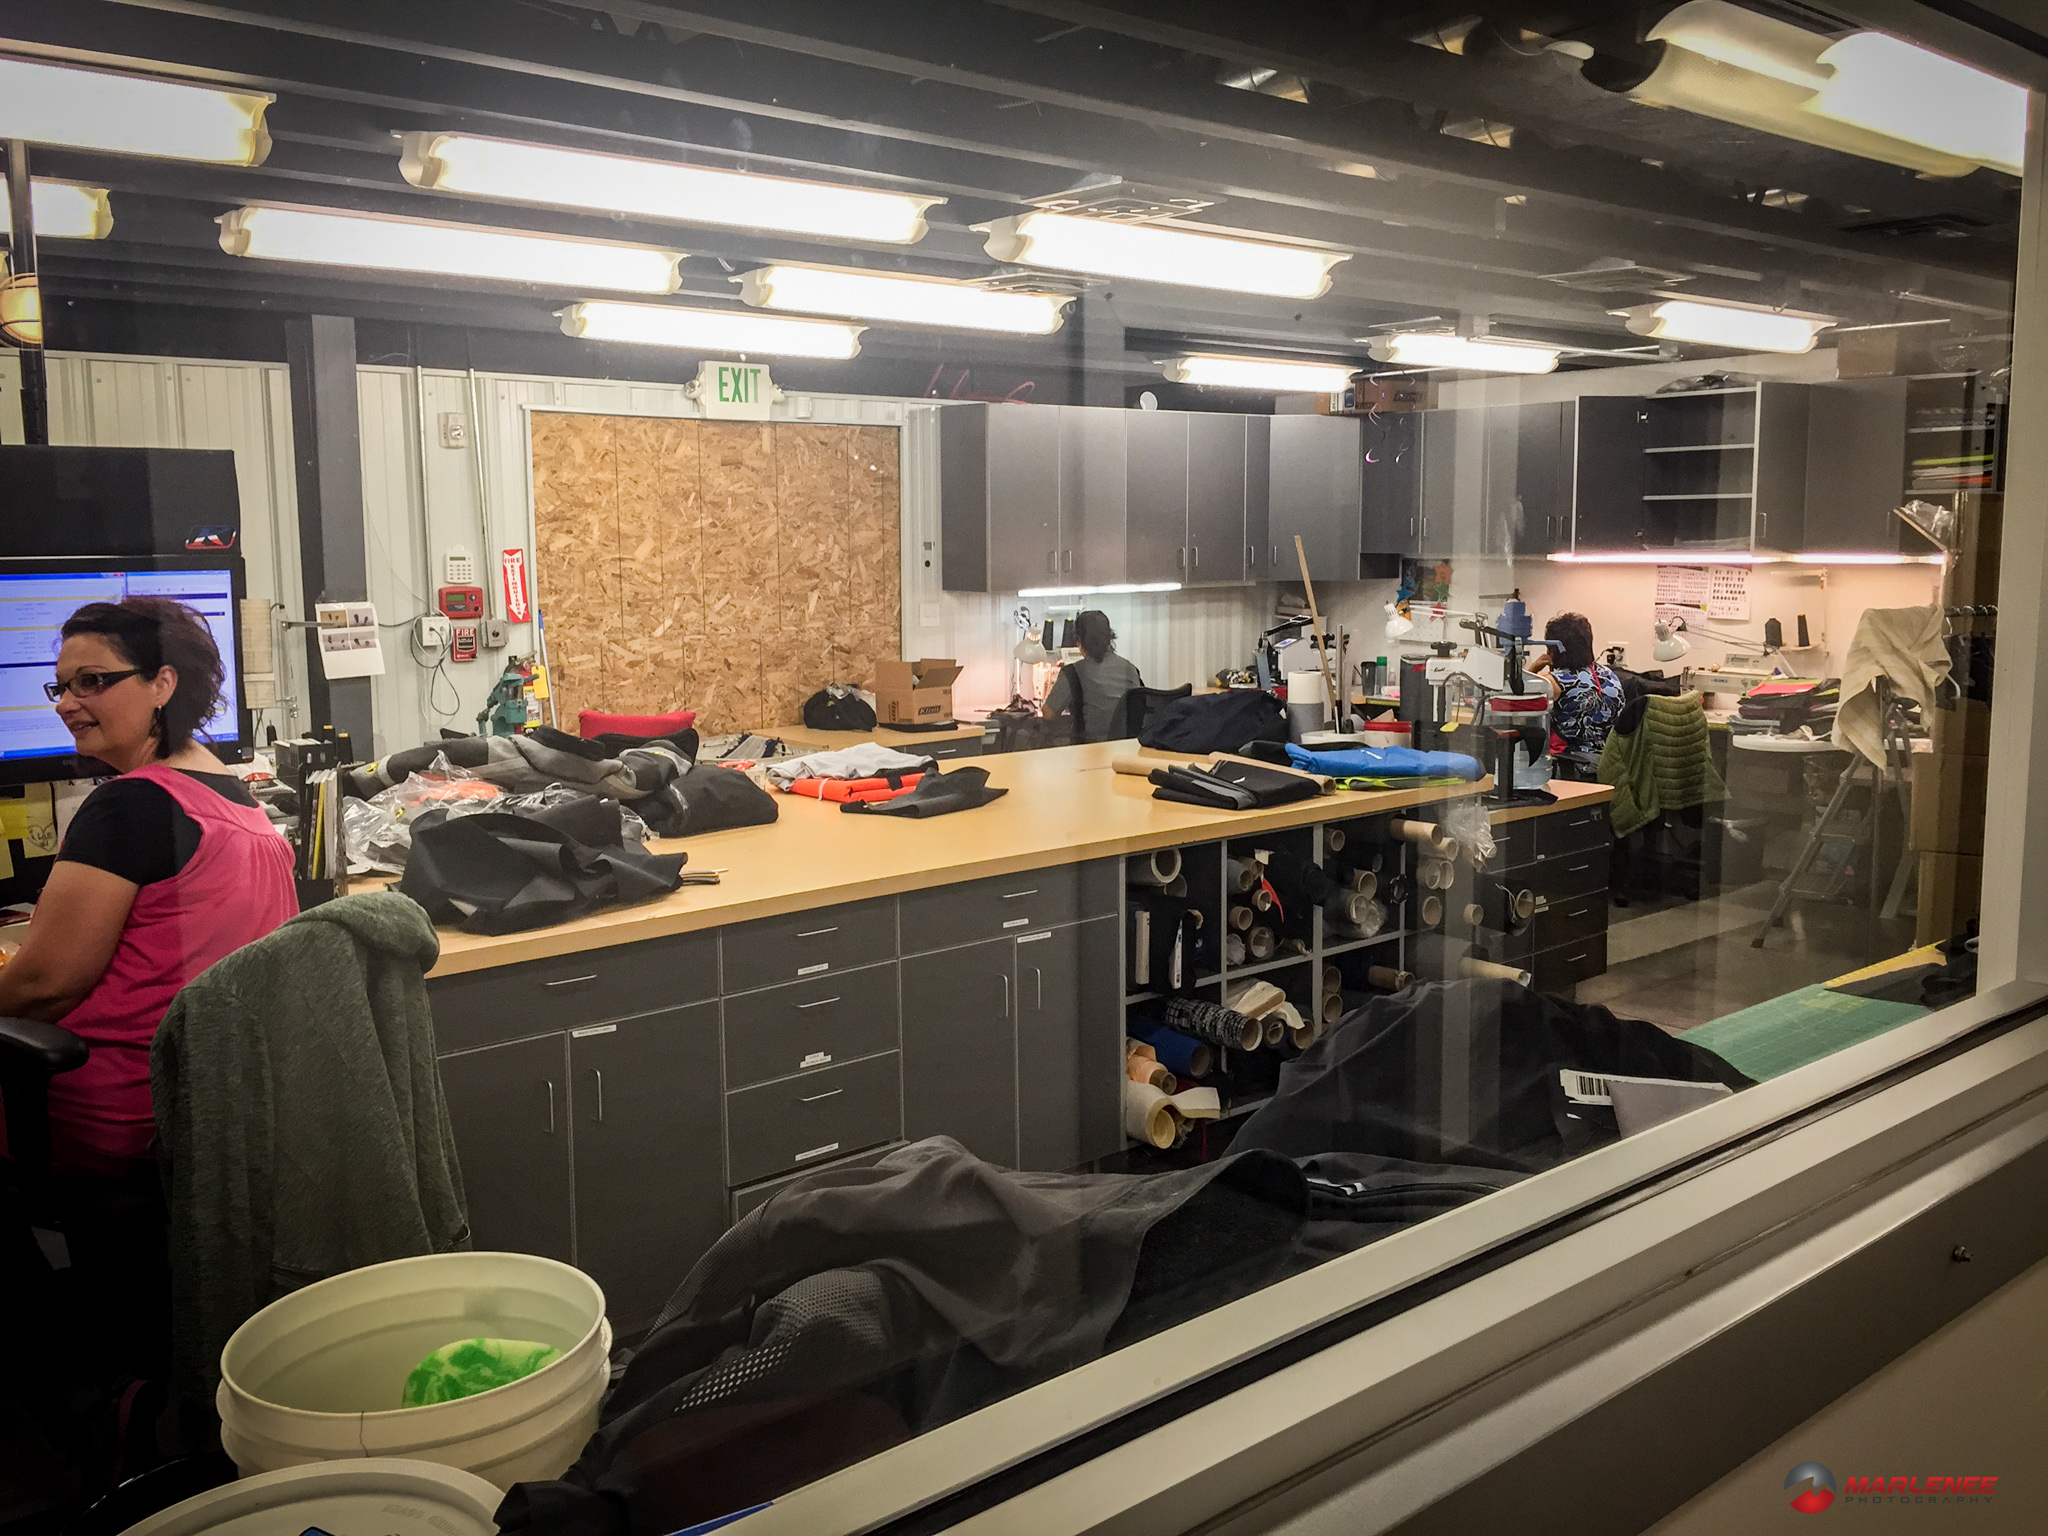 The Klim warranty department - notice how few garments are actually in here